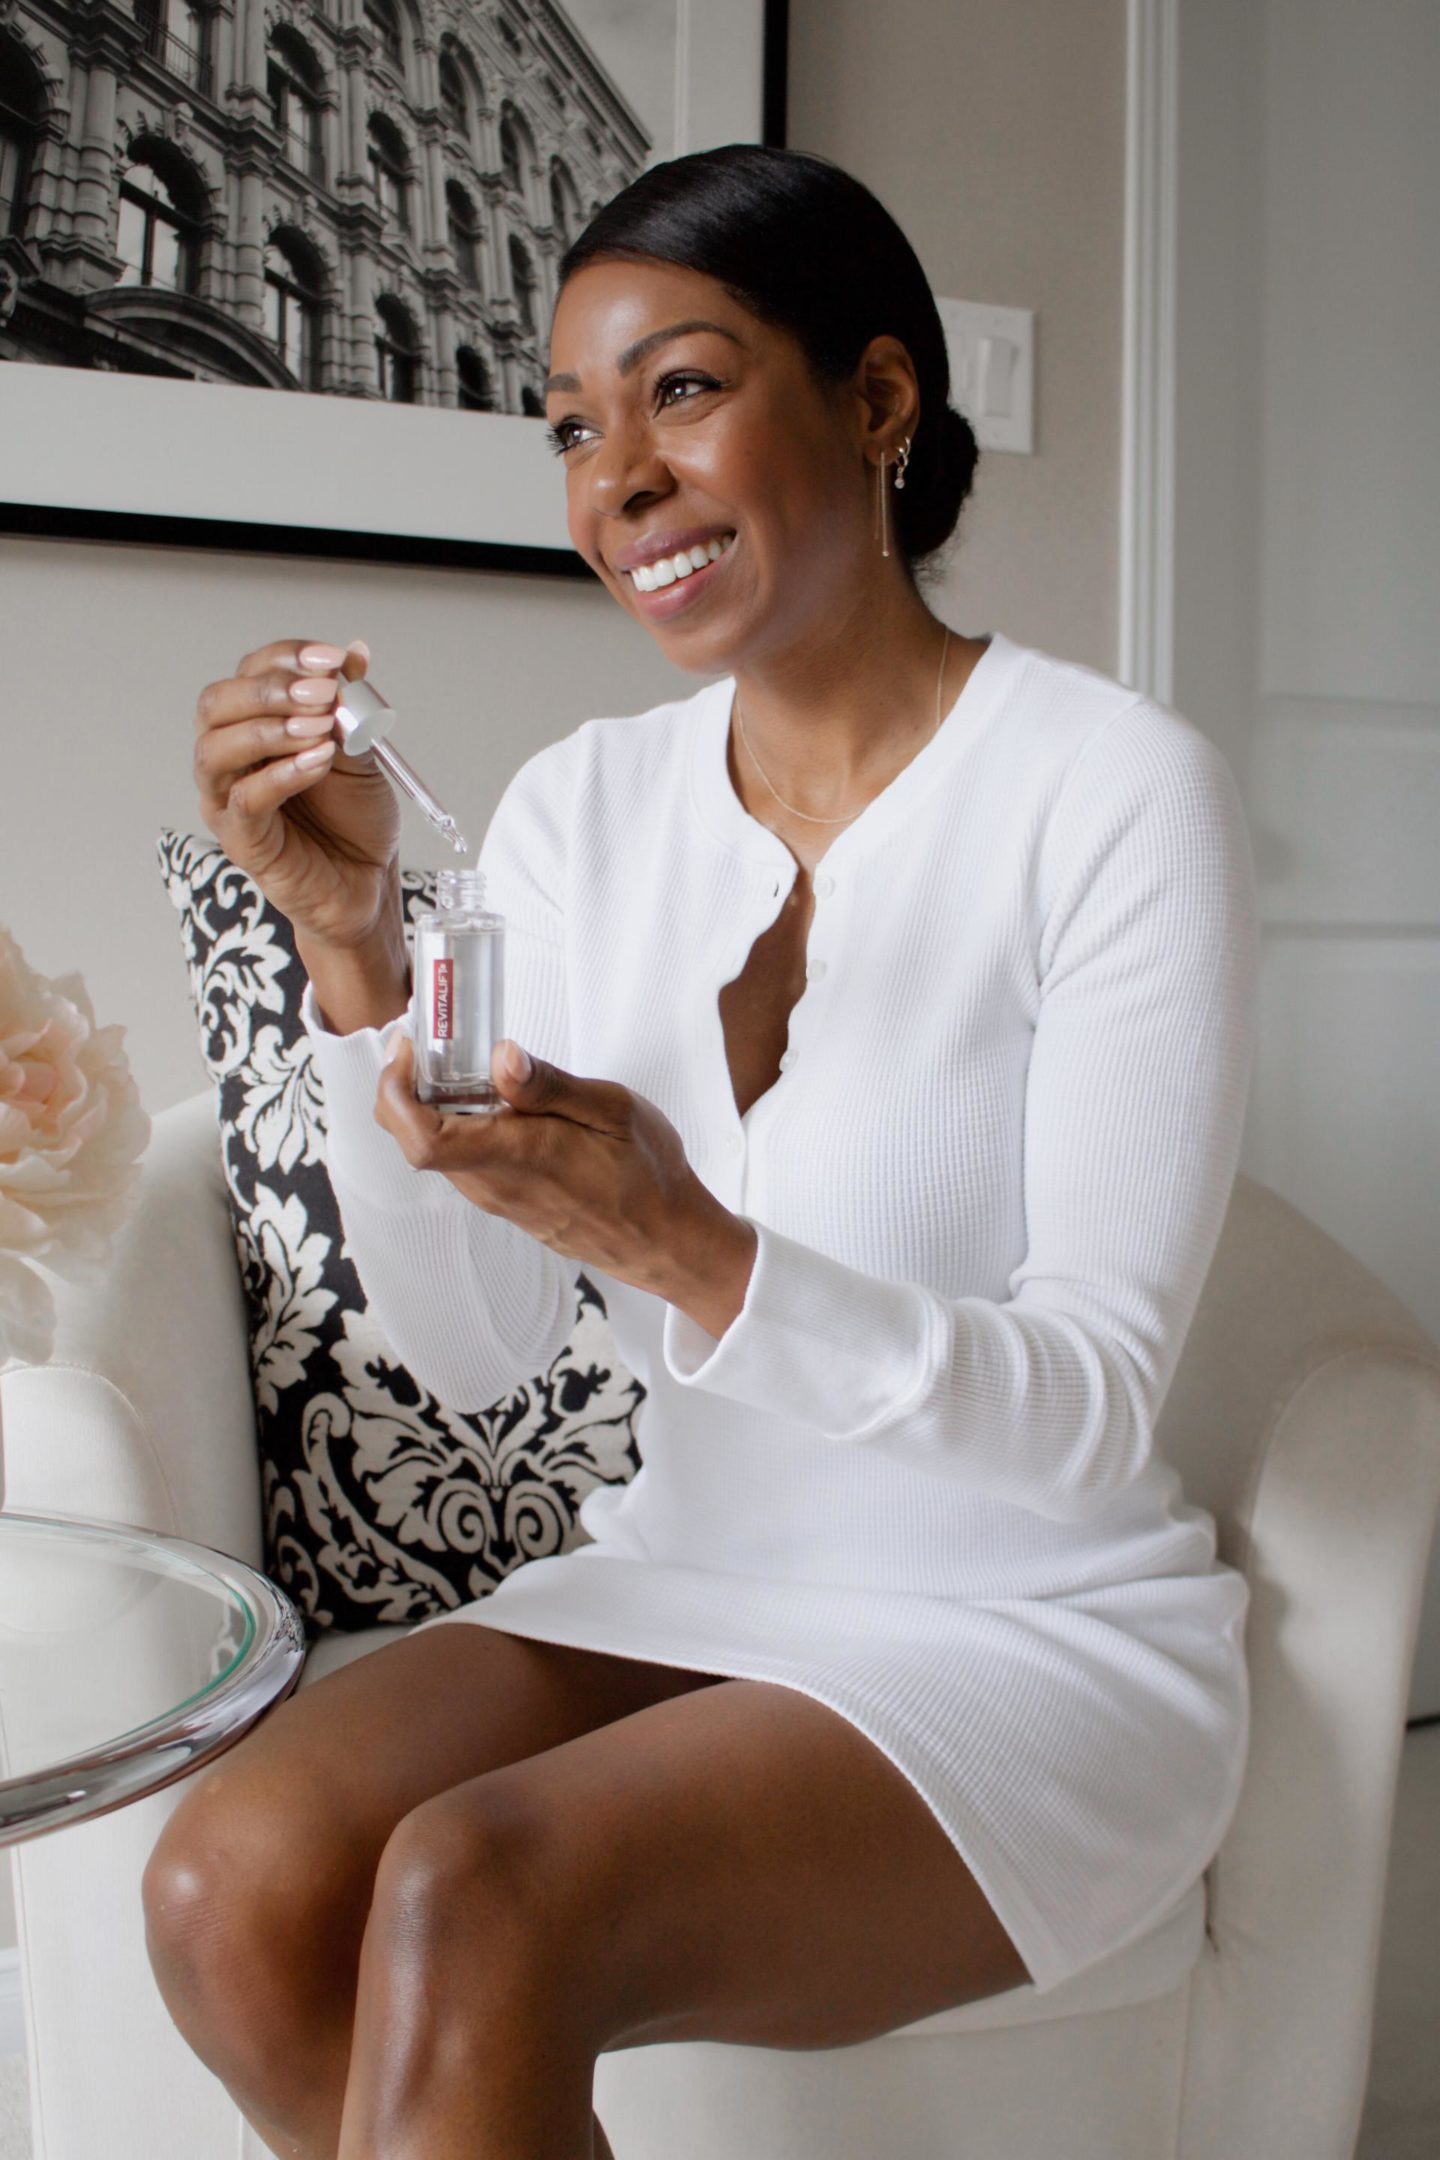 Dominique Baker Holding L'Oréal Revitalift Pure Hyaluronic Acid Serum White Dress sitting in chair